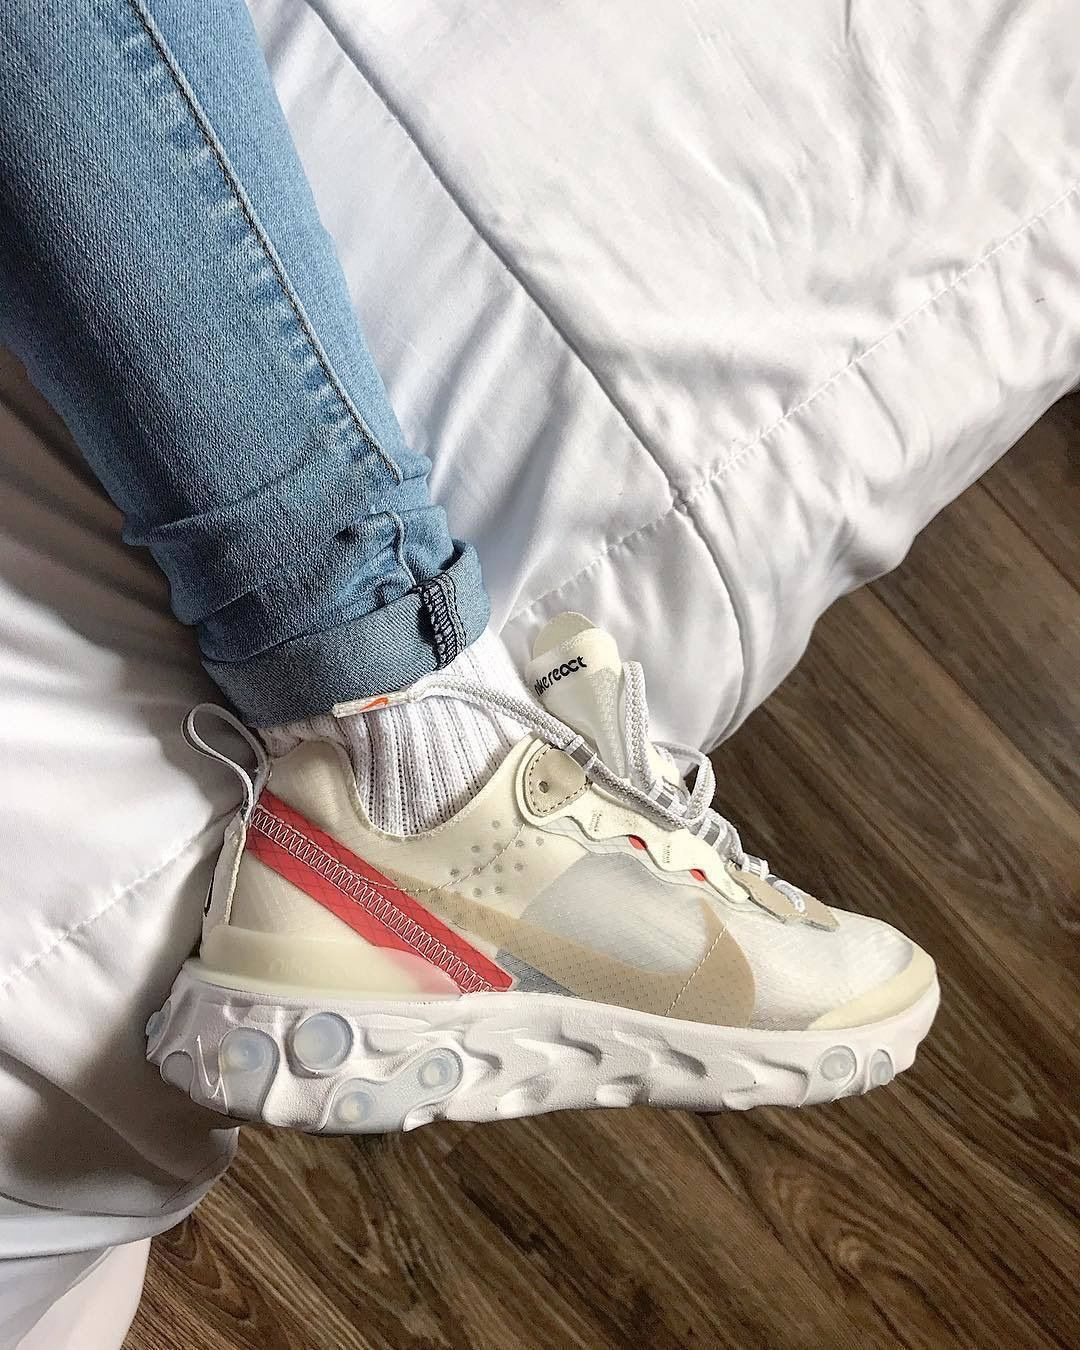 2020 2019 New Best Selling React Element 87 Men Women Designer Lightweight Roller Shoes Without Box From Tomi358 57 00 Dhgate Com Roller Shoes Sneaker Head Types Of Shoes